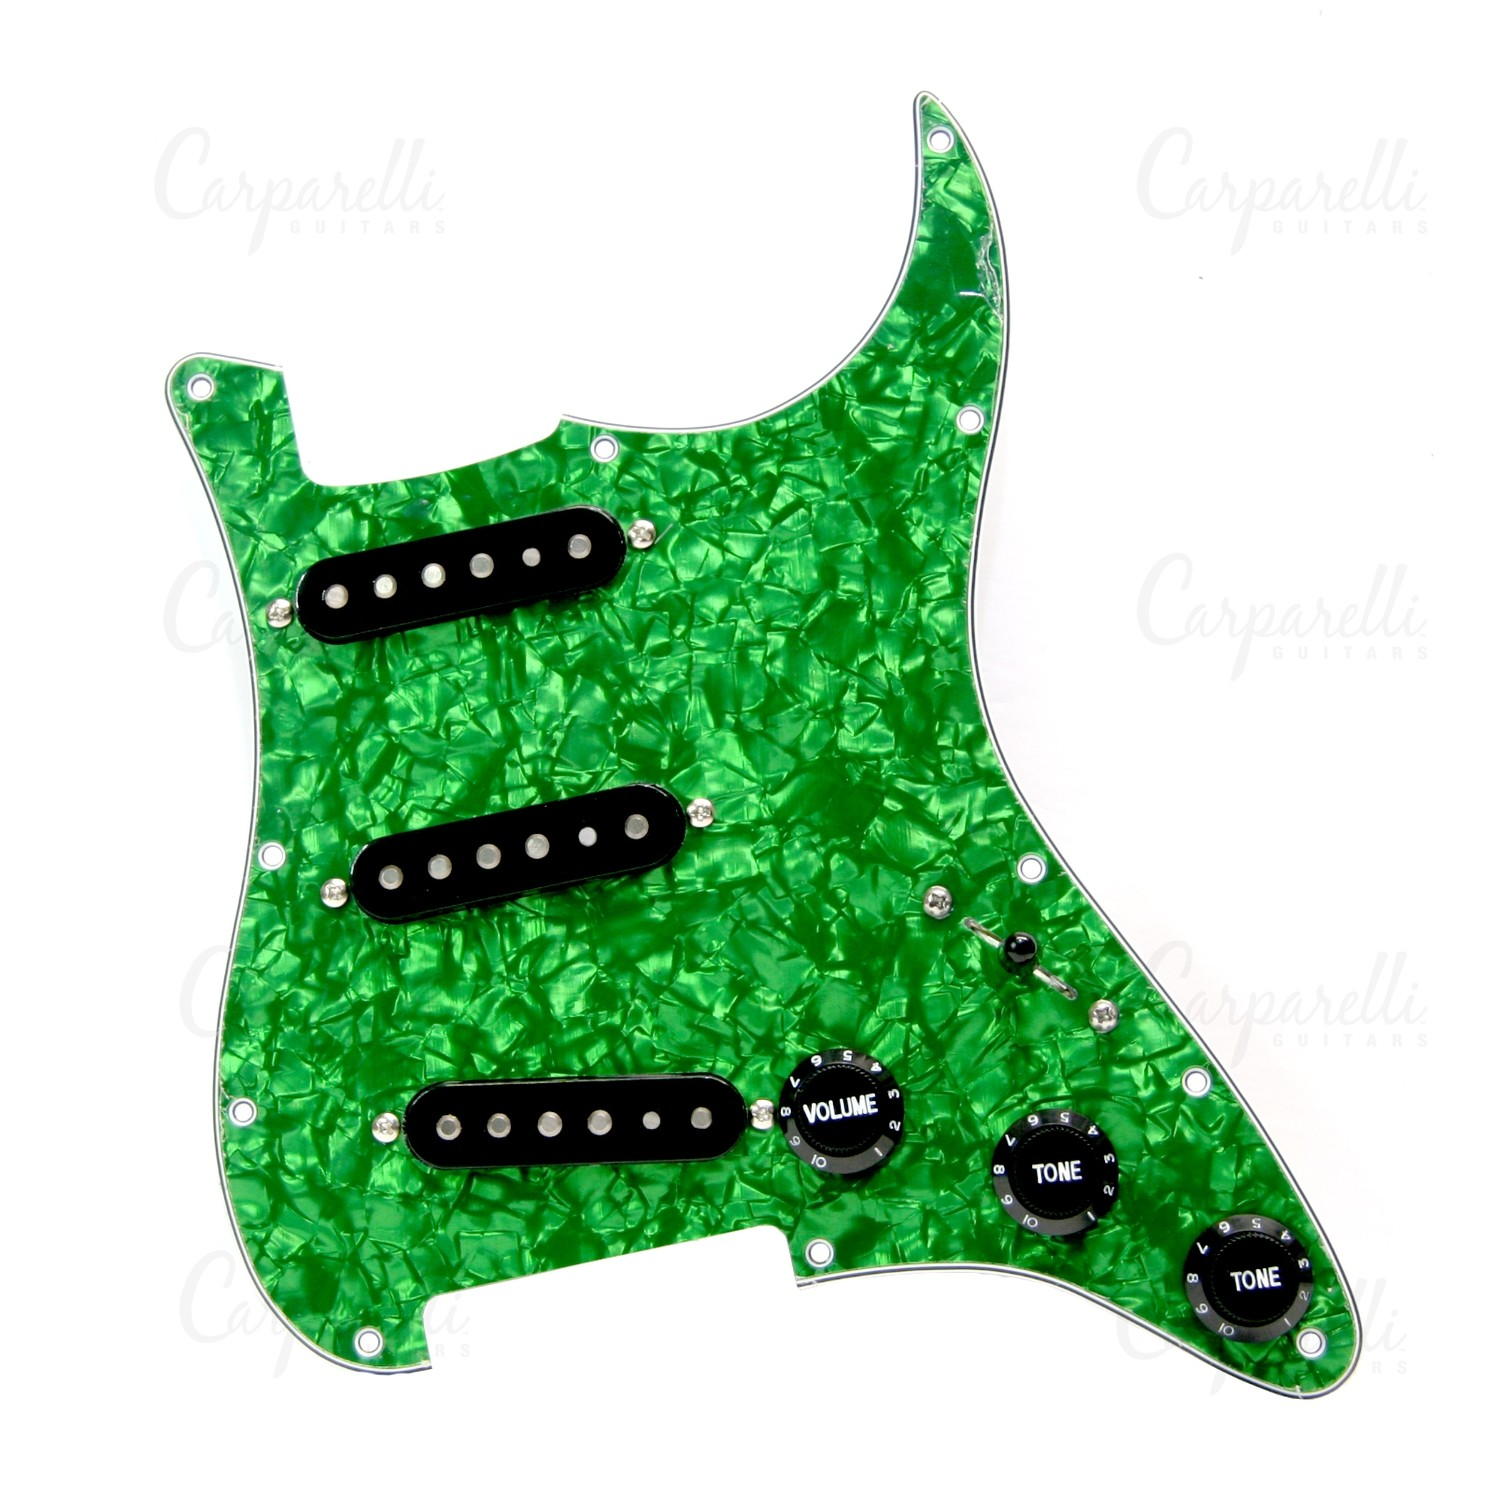 Carparelli Pre-Wired SSS Green Pearloid for Stratocaster®